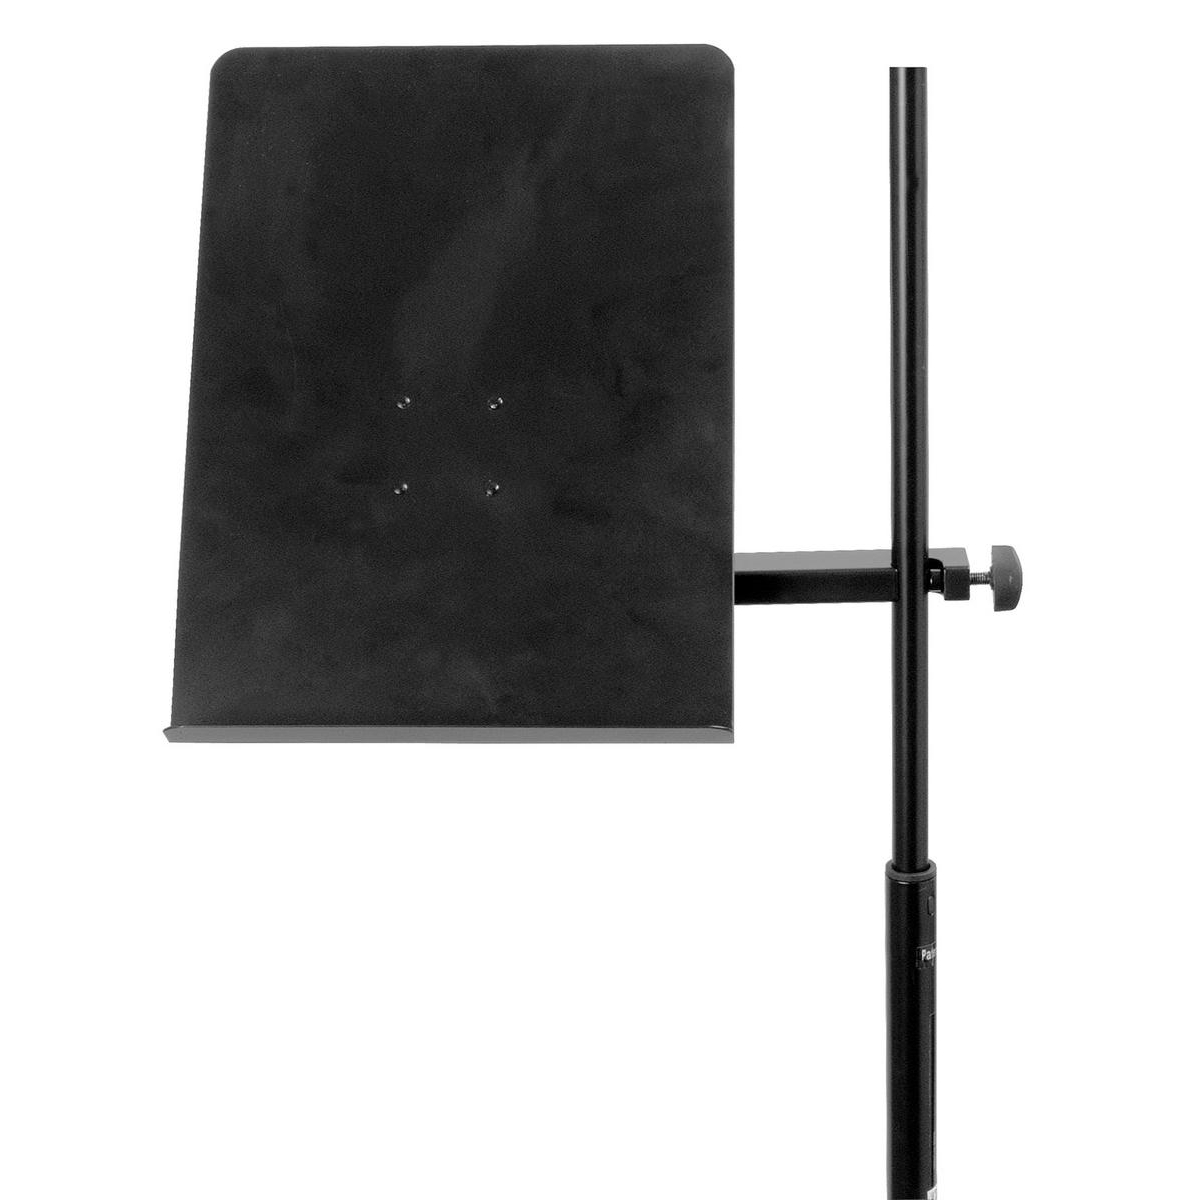 Clamp on music stand